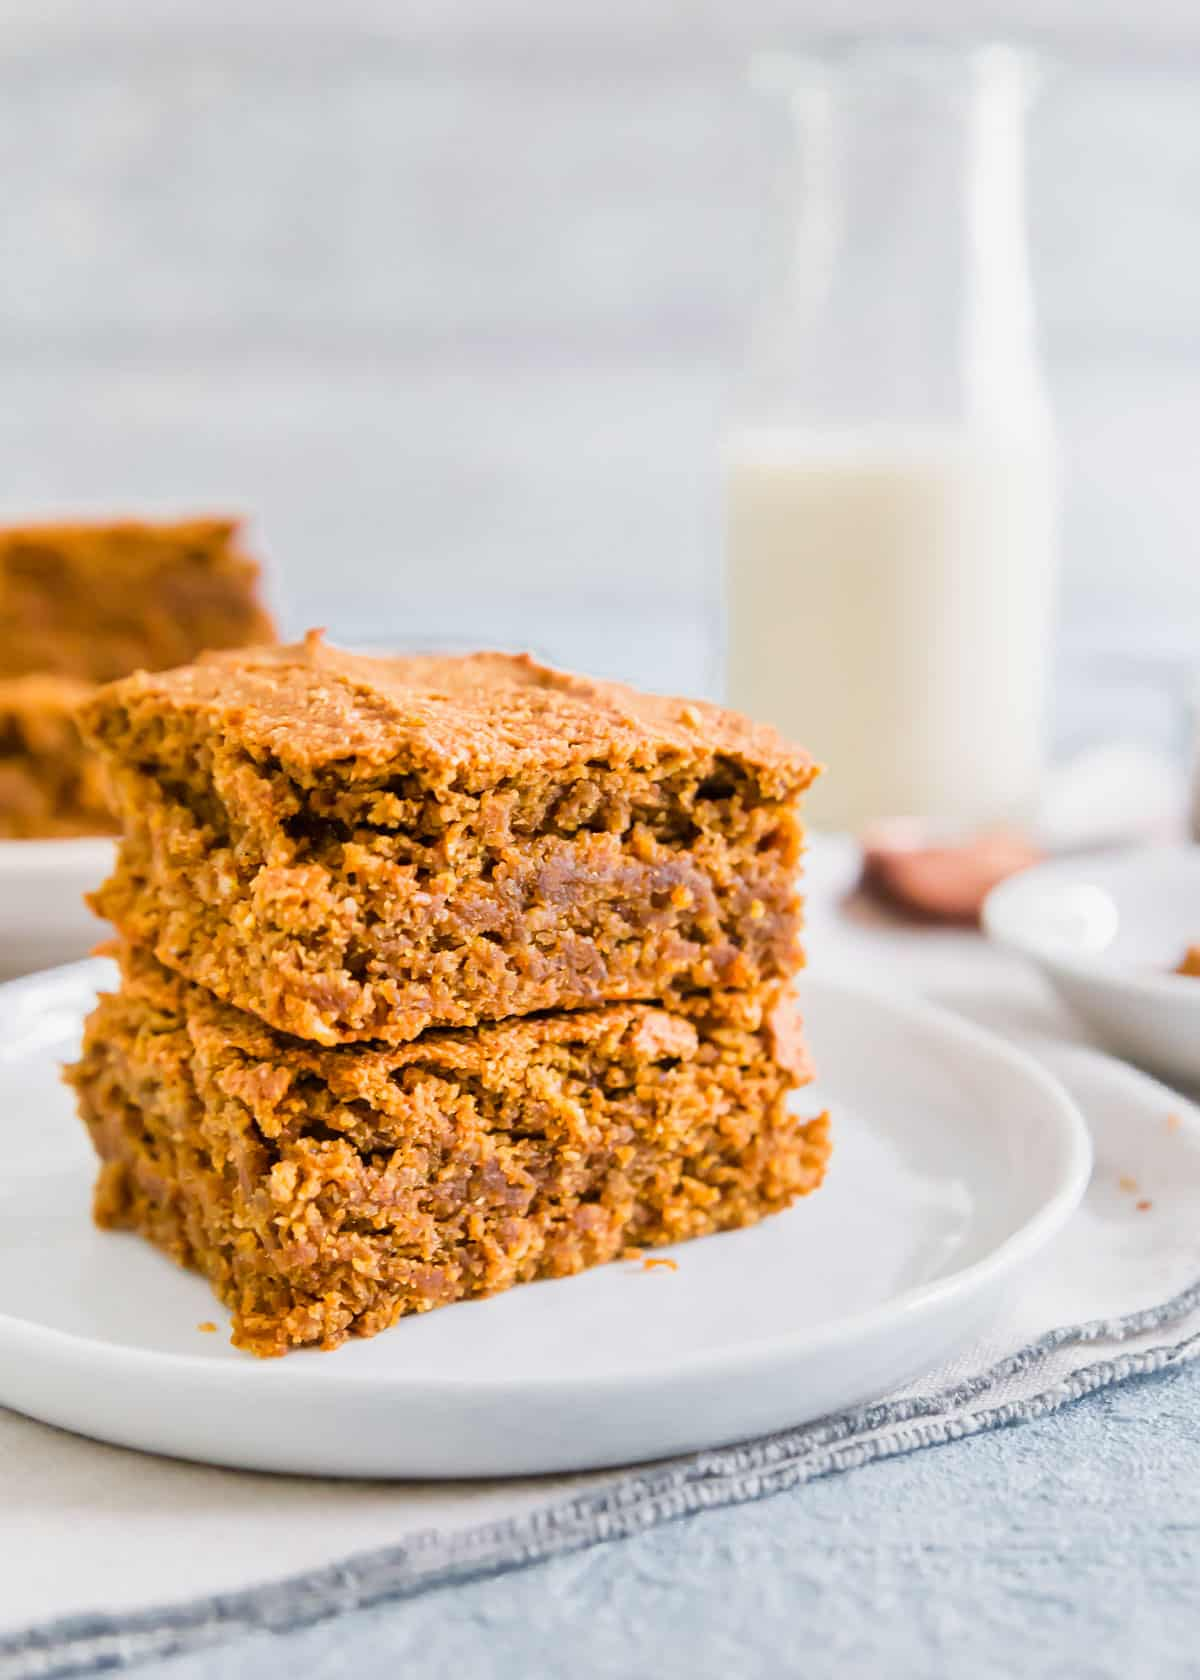 Moist, cake-like pumpkin bars that are gluten-free and vegan! Packed with fall spices to make a delicious afternoon snack or dessert.